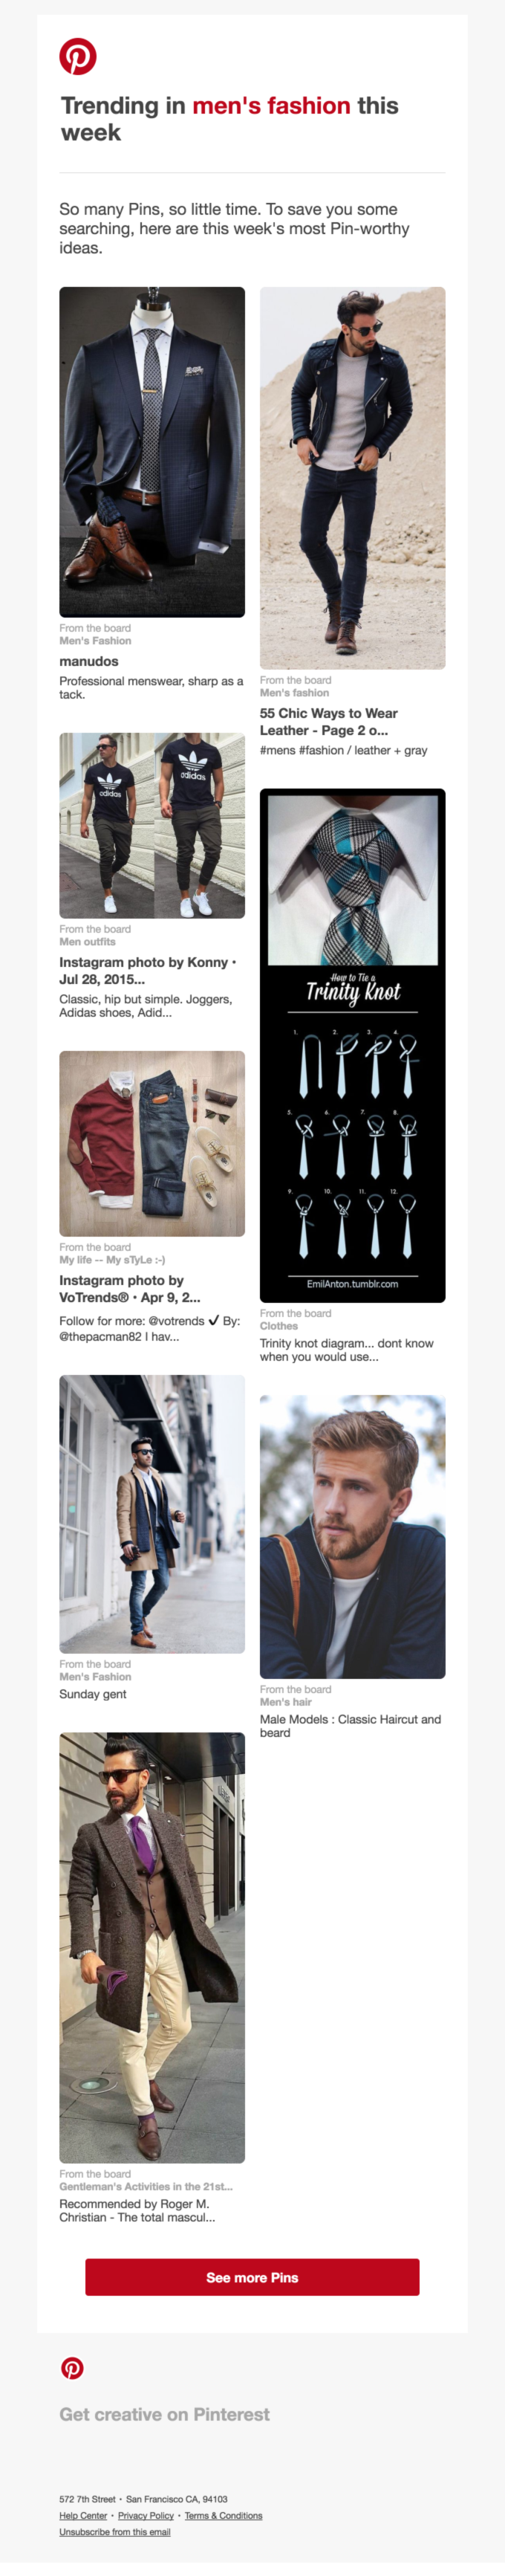 Top 8 trending Pins in men's fashion